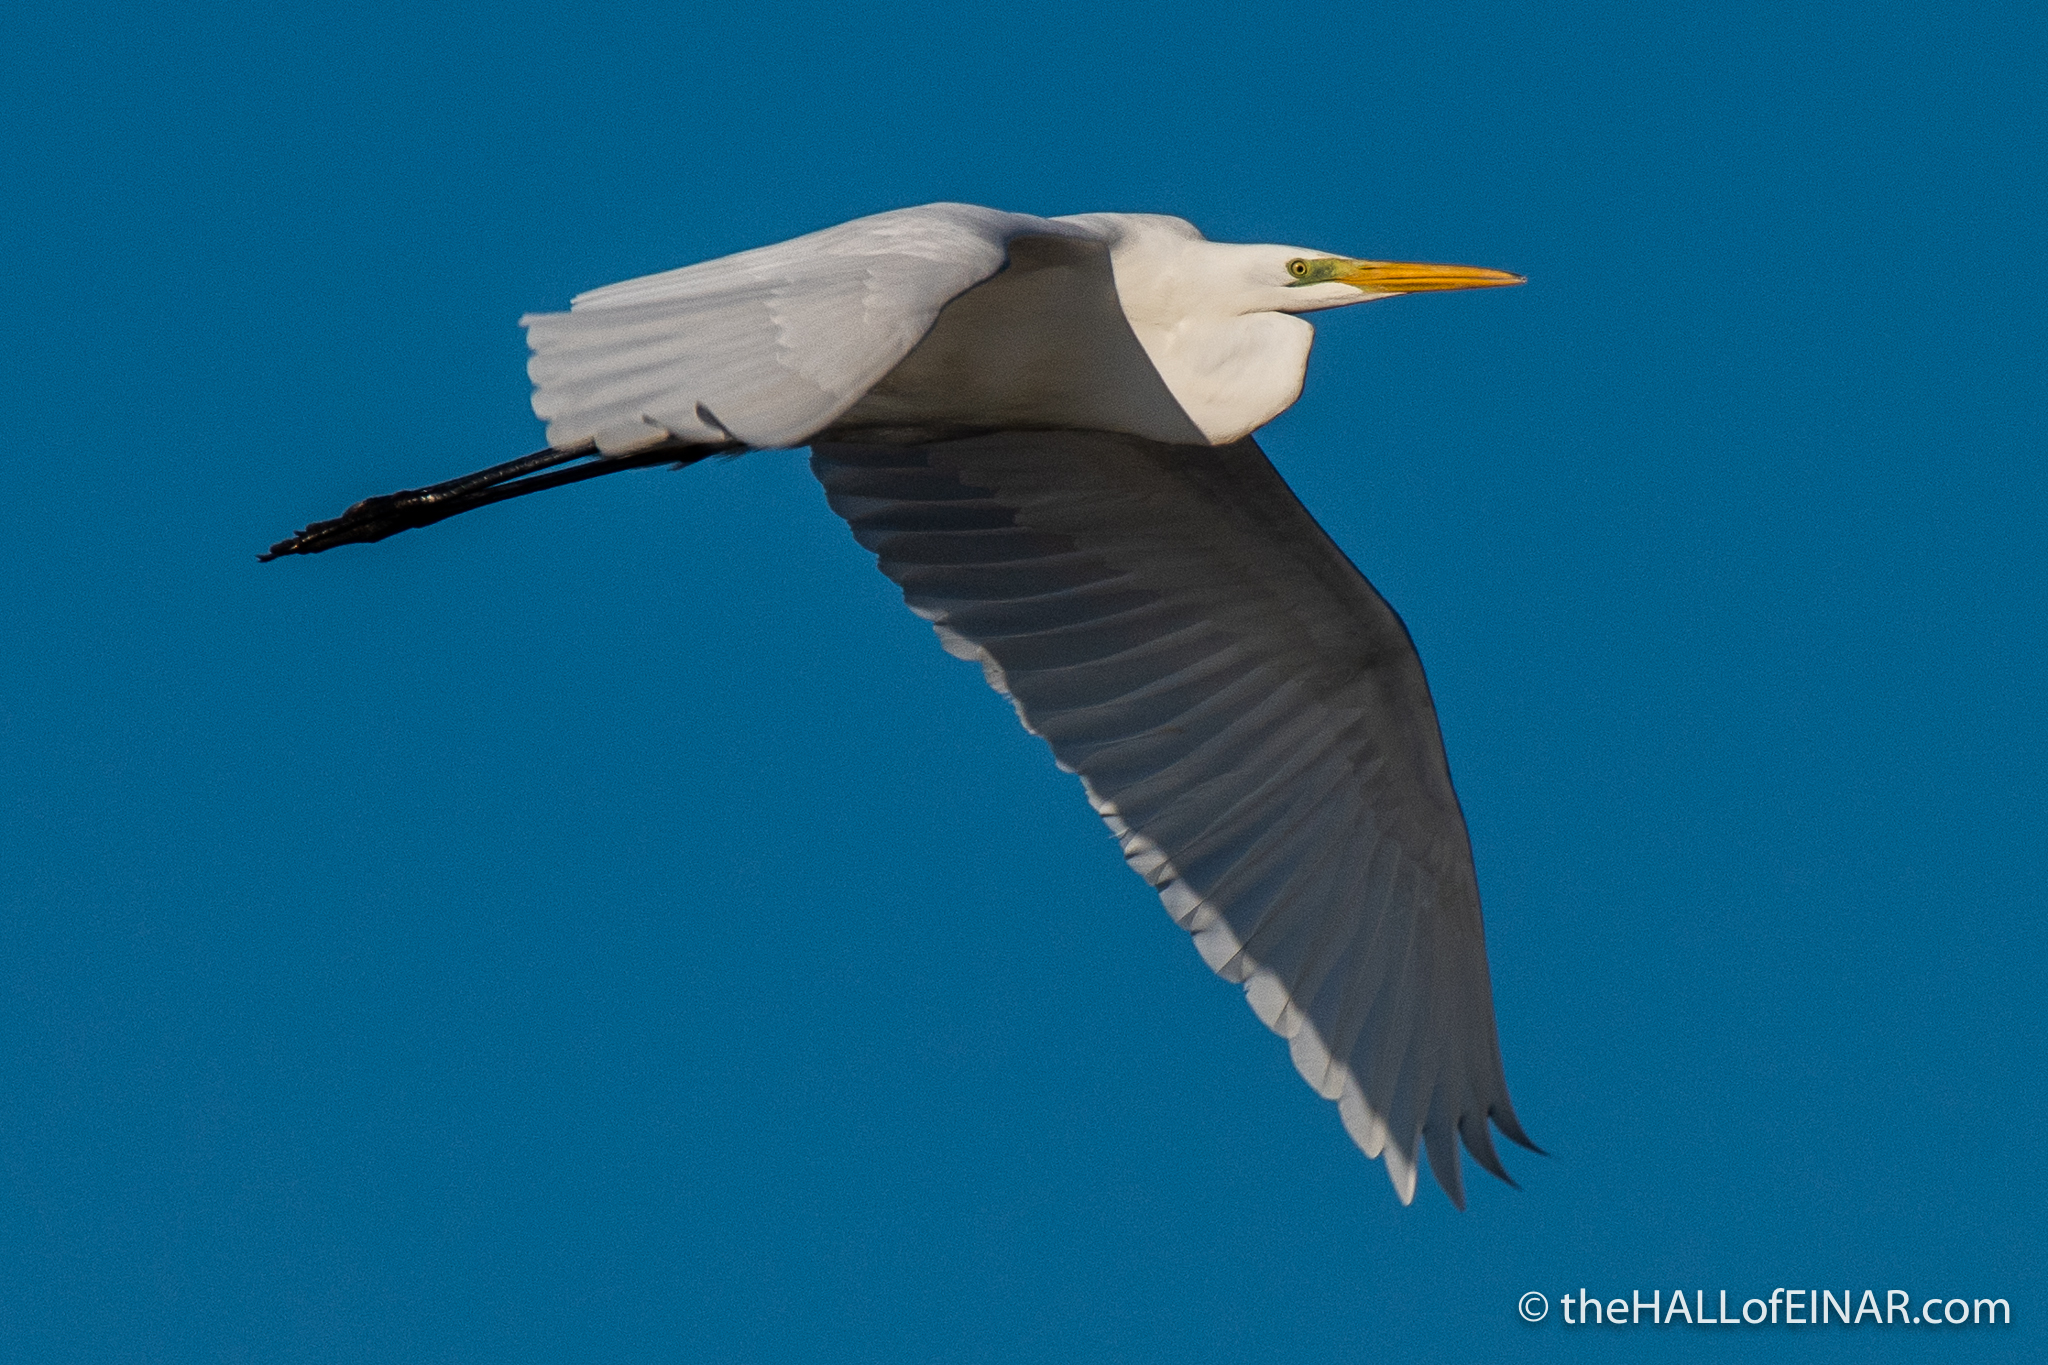 Great White Egret - Orbetello - The Hall of Einar - photograph (c) David Bailey (not the)